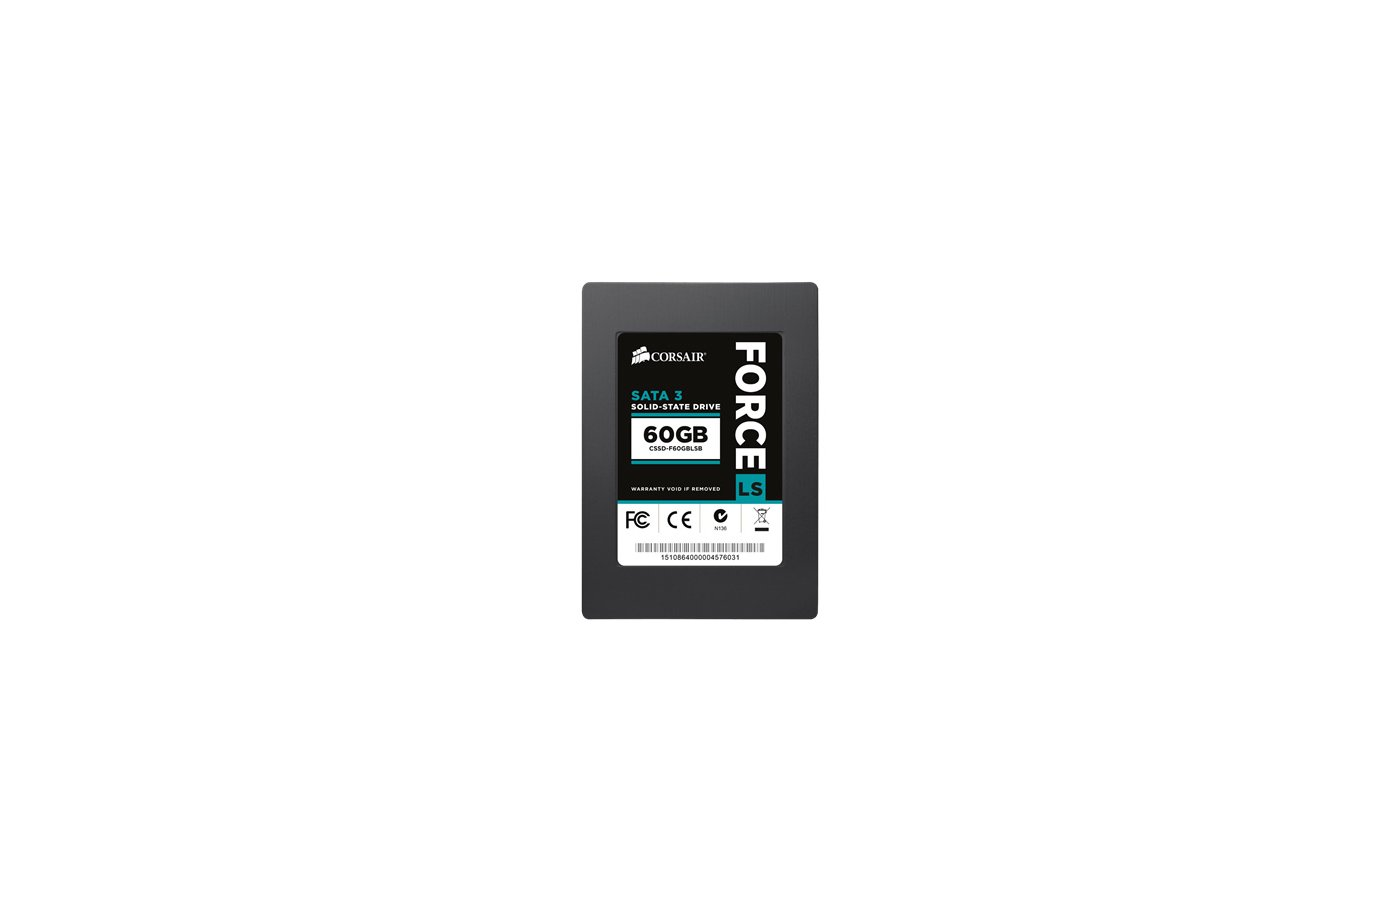 SSD жесткий диск Corsair SATA-III 60Gb CSSD-F60GBLSB Force LS 2.5